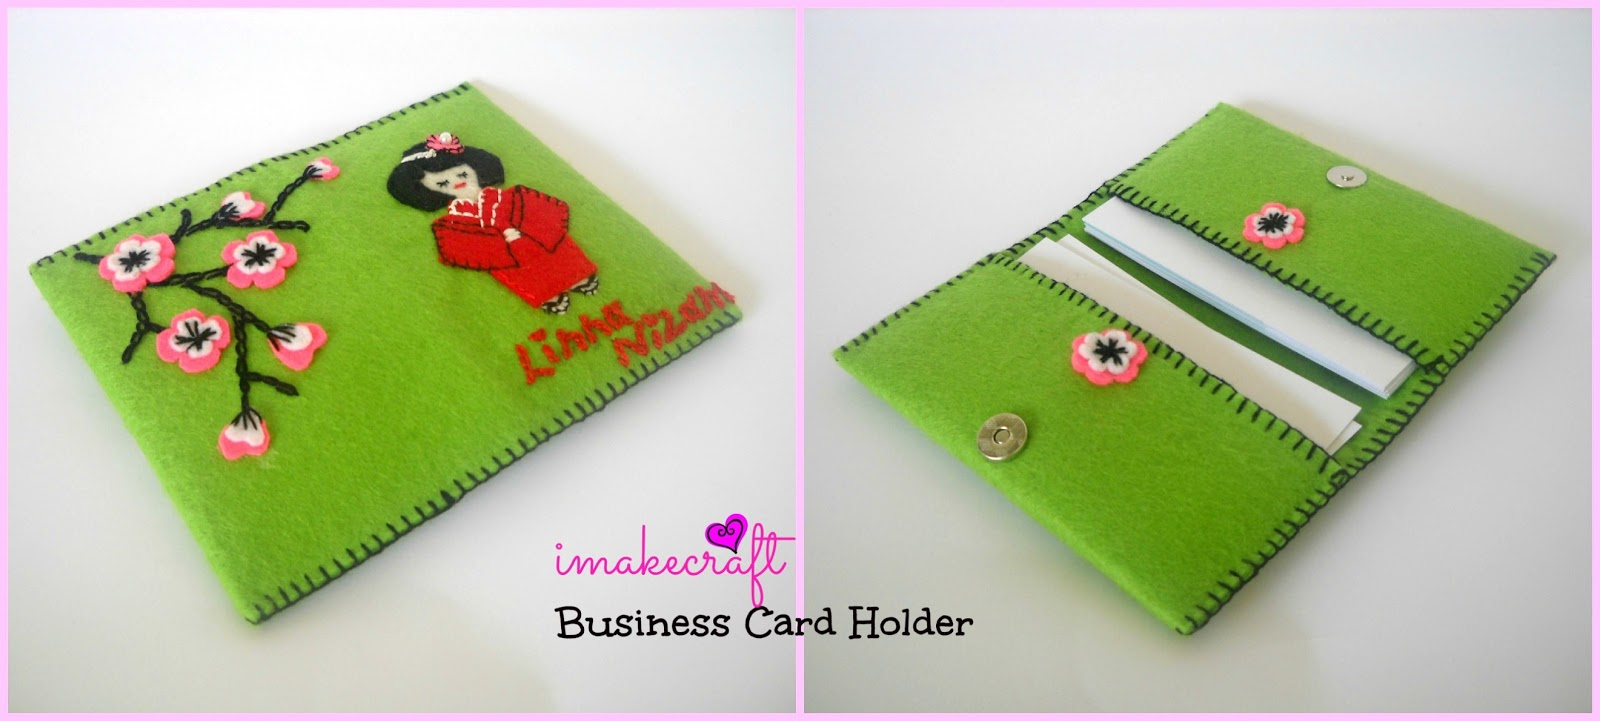 imakecraft: Handmade Business Card Holder